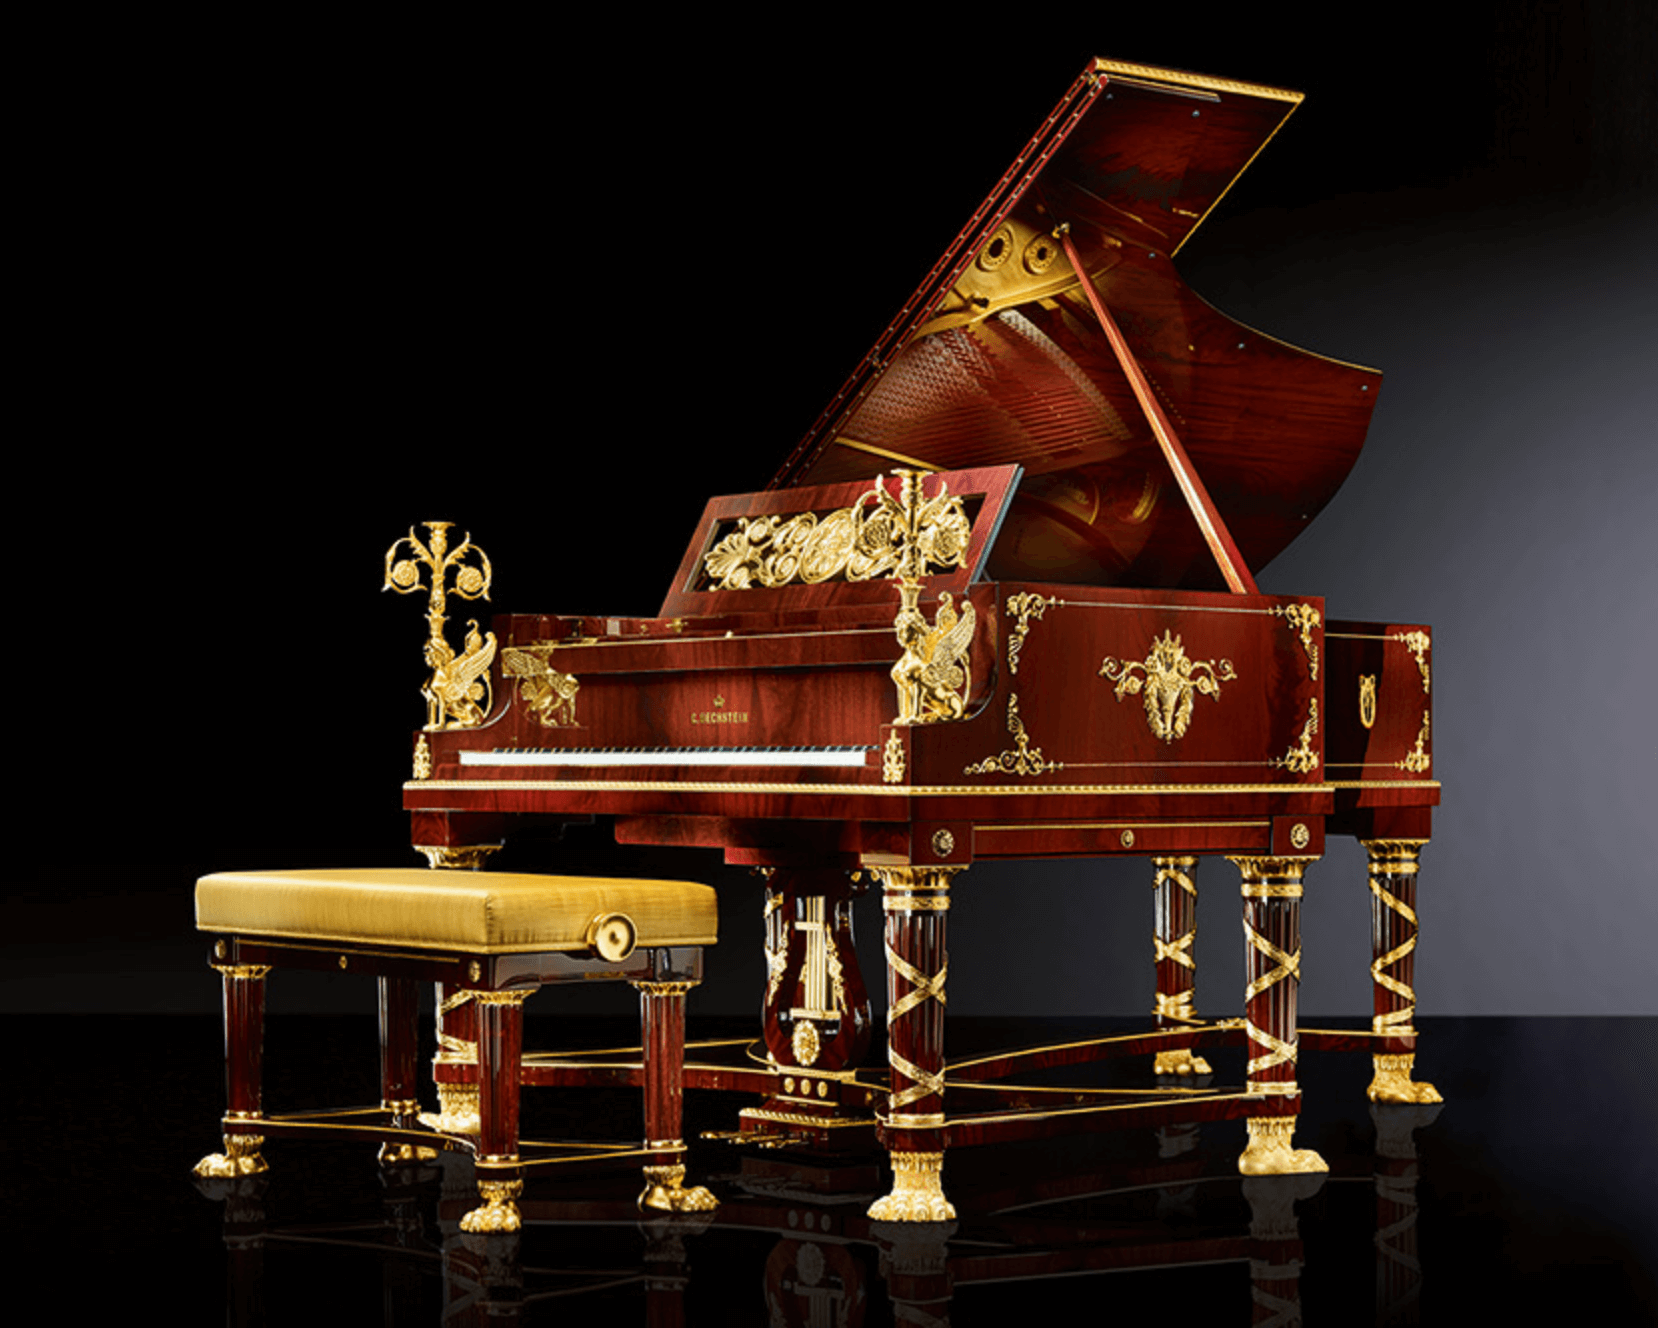 C.Bechstein Sphinx expensive Grand Piano